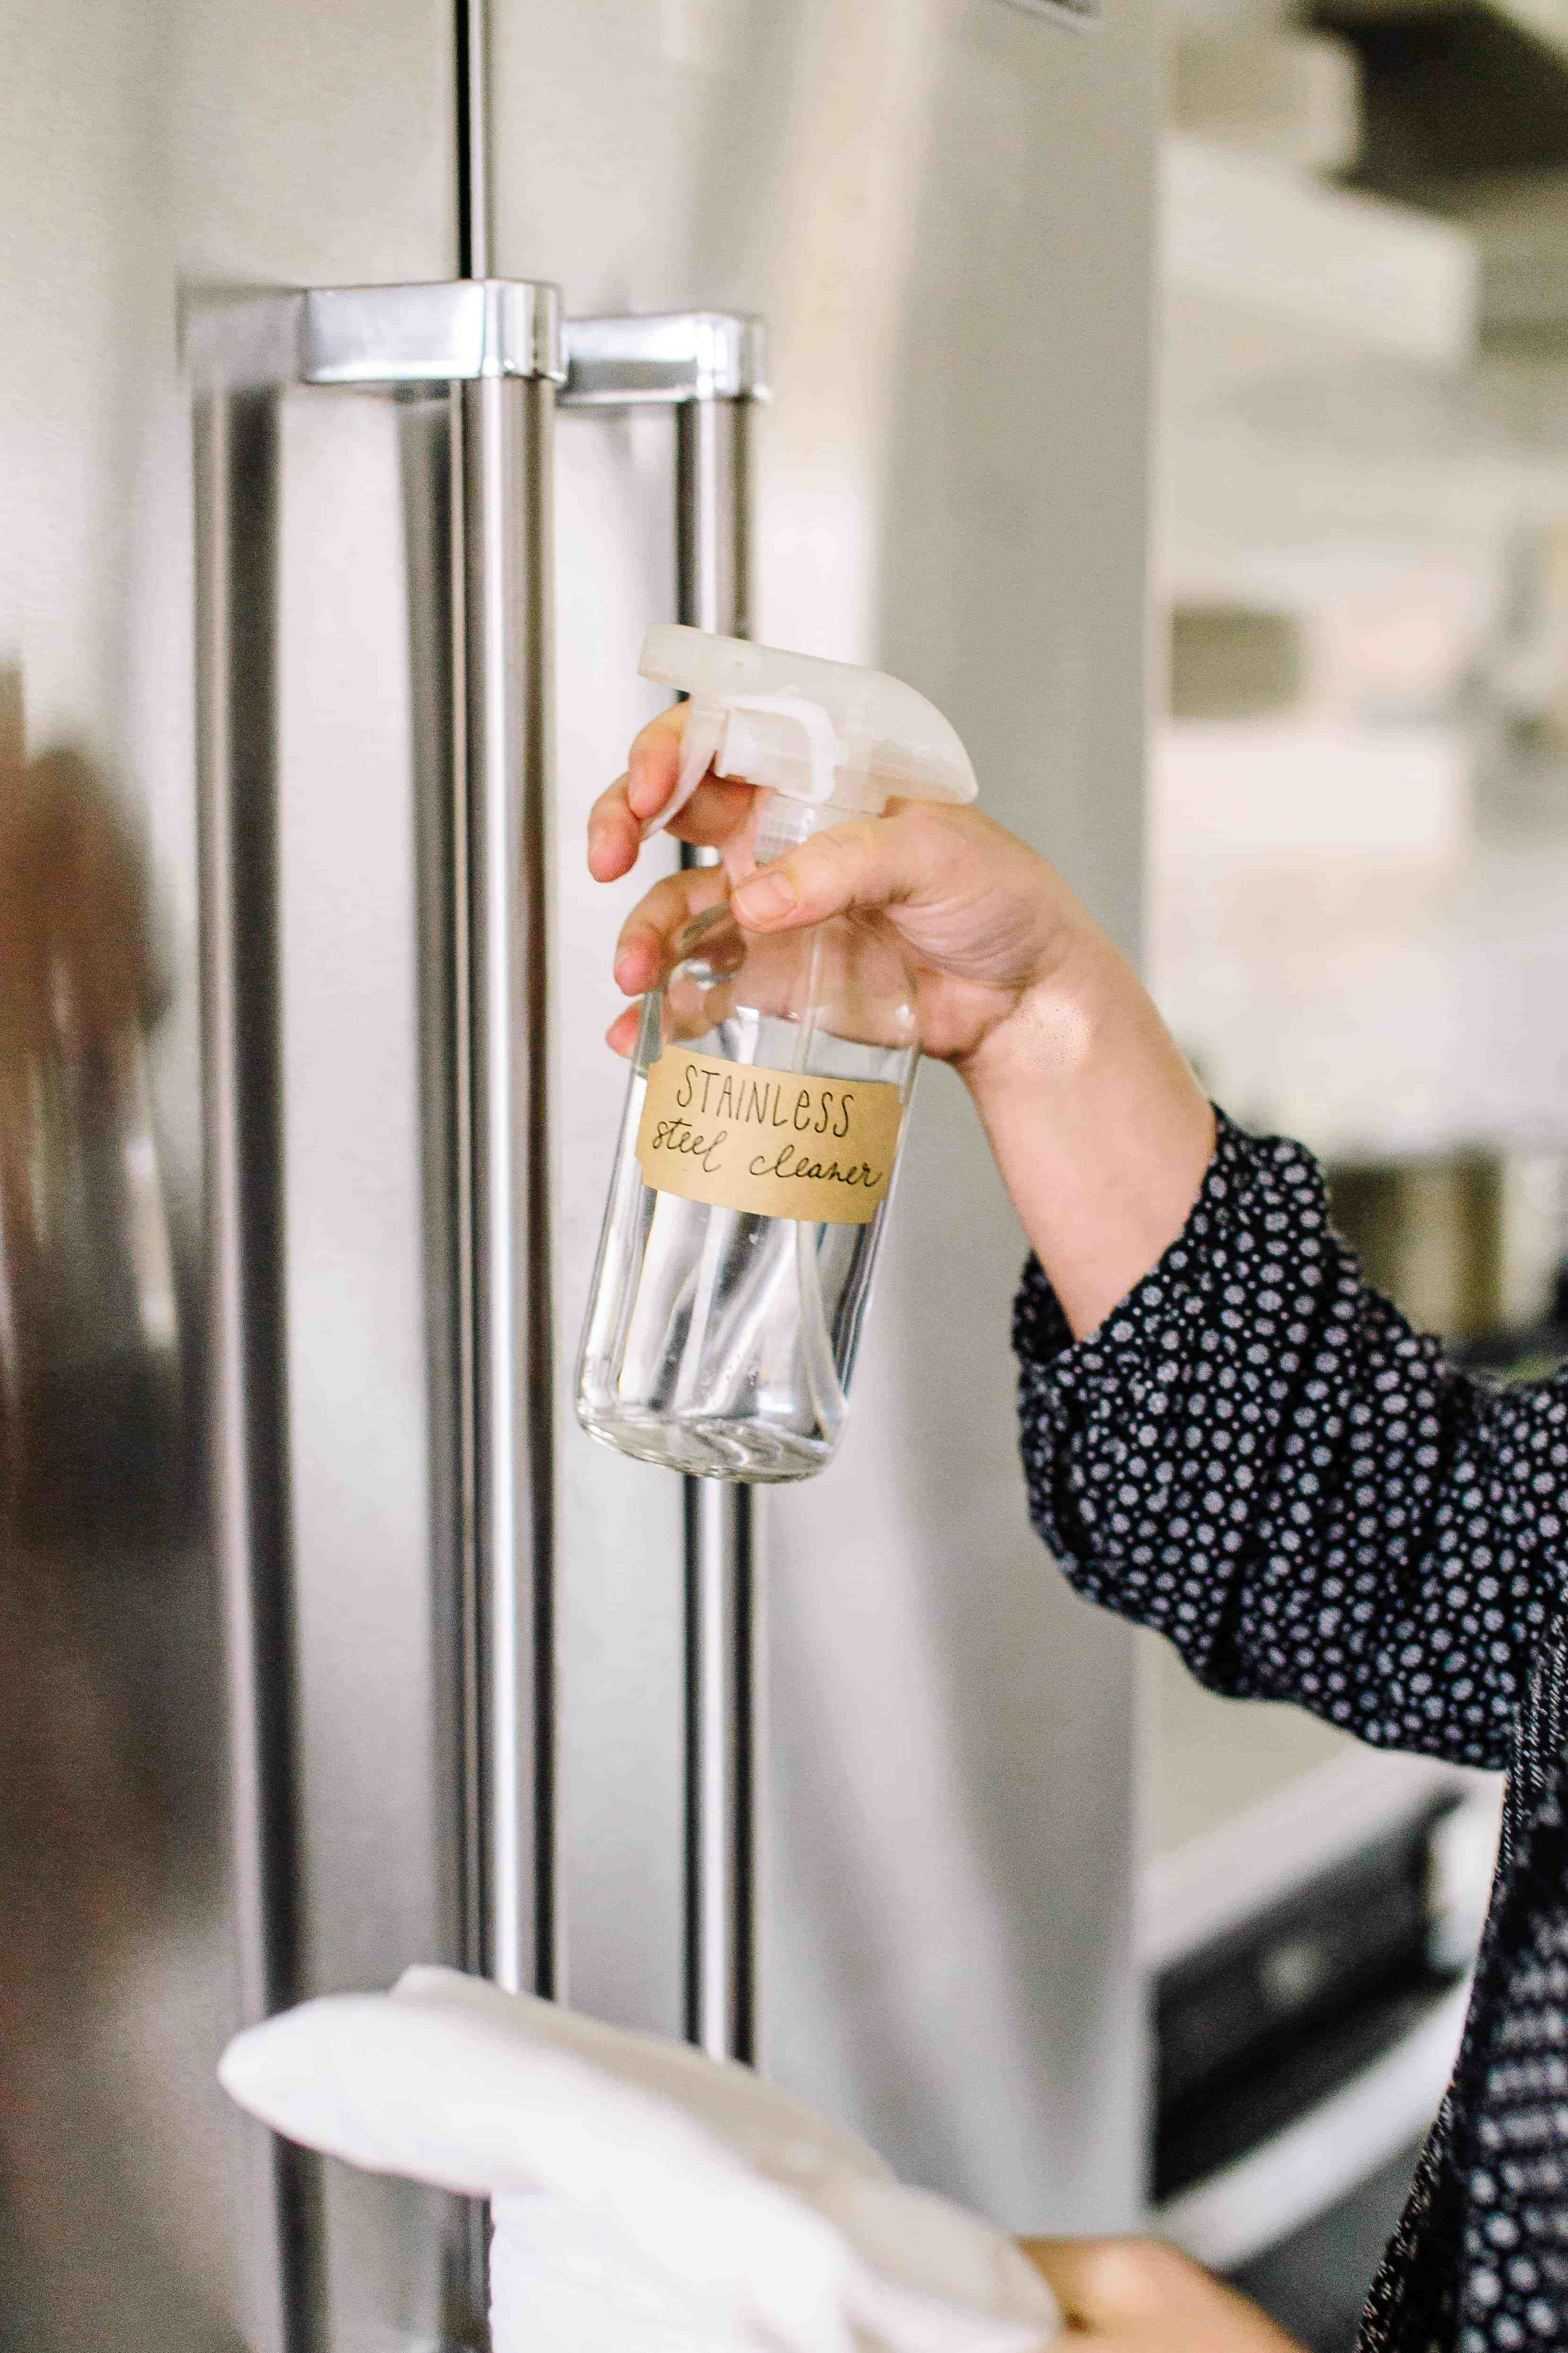 Freshen Up Your Furniture With This Diy Upholstery Spray Recipe Stainless Steel Cleaner Diy Stainless Steel Cleaner Cleaning Stainless Steel Fridge